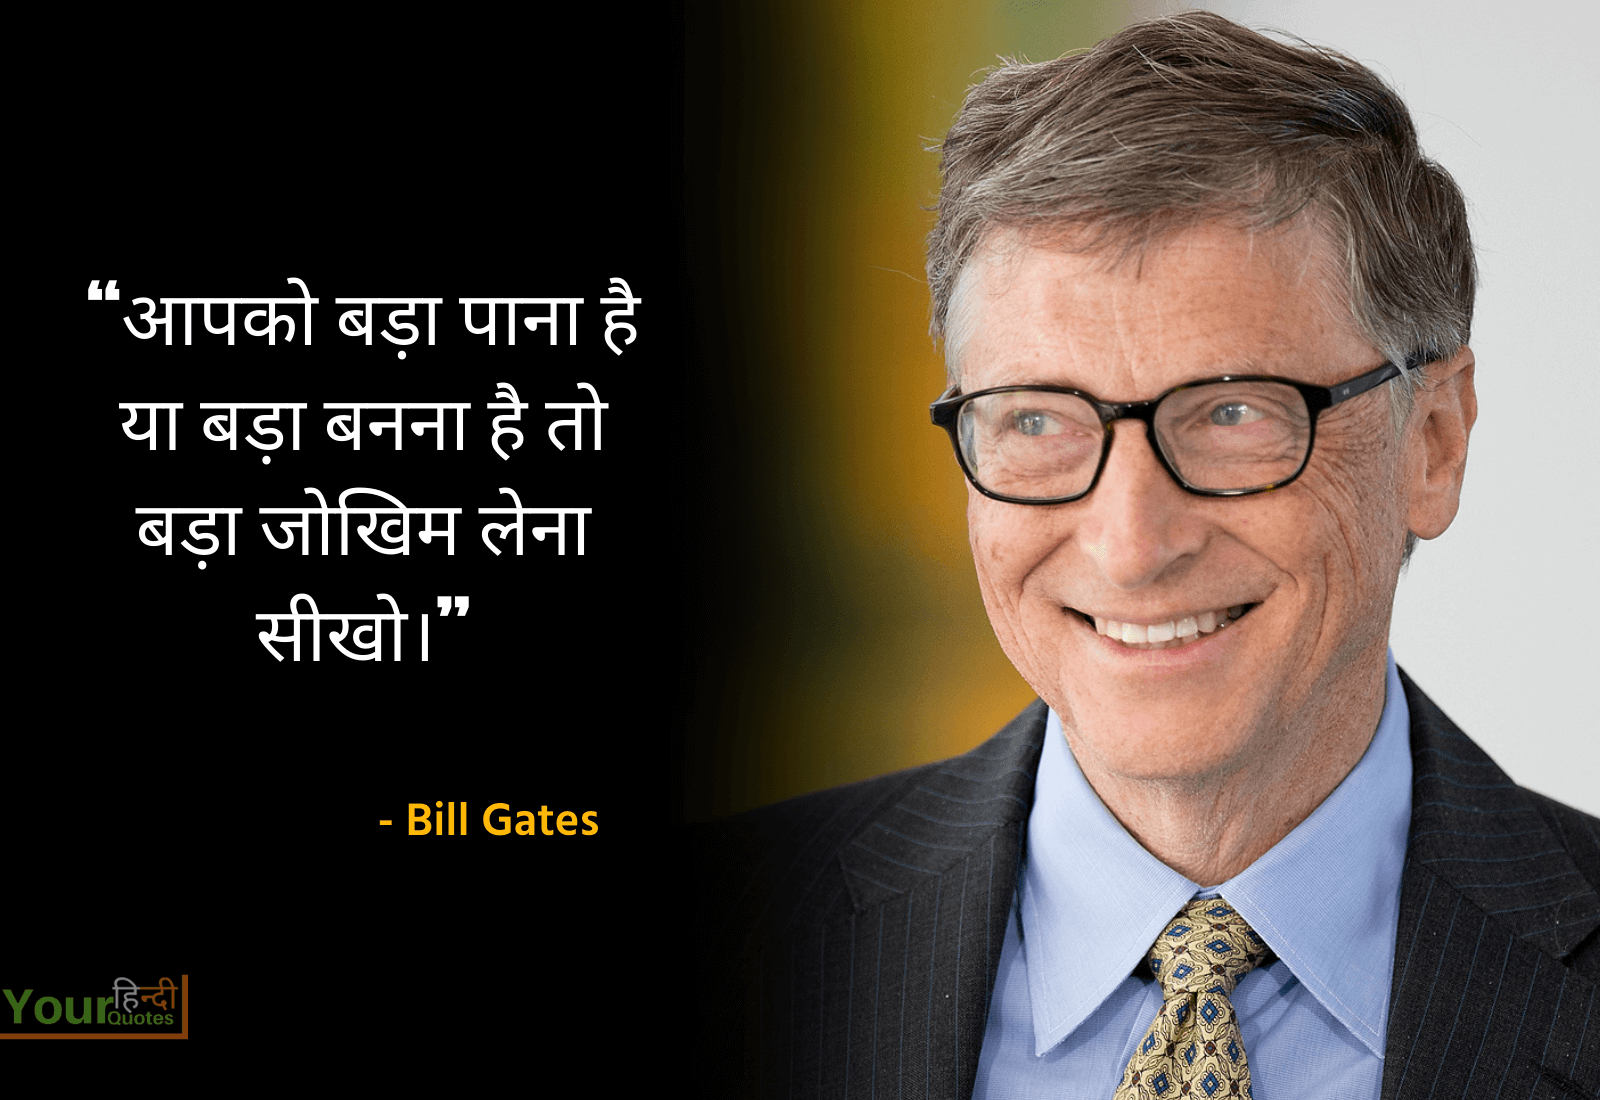 Bill Gates Hindi Quotes Images